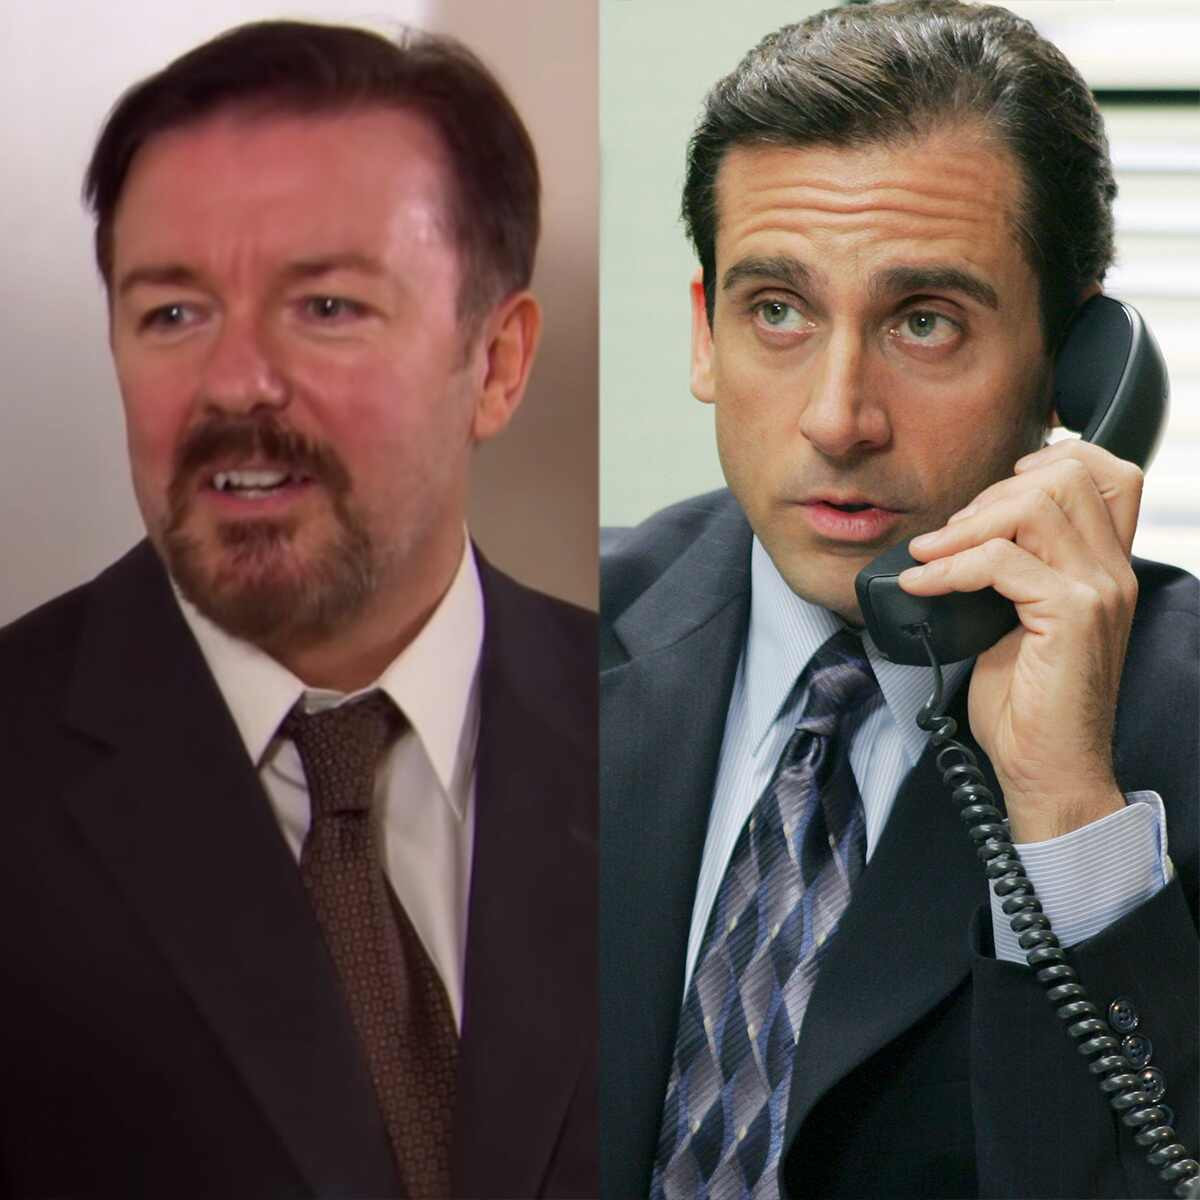 Ricky Gervais, Steve Carell, The Office, American Shows Vs. British Originals